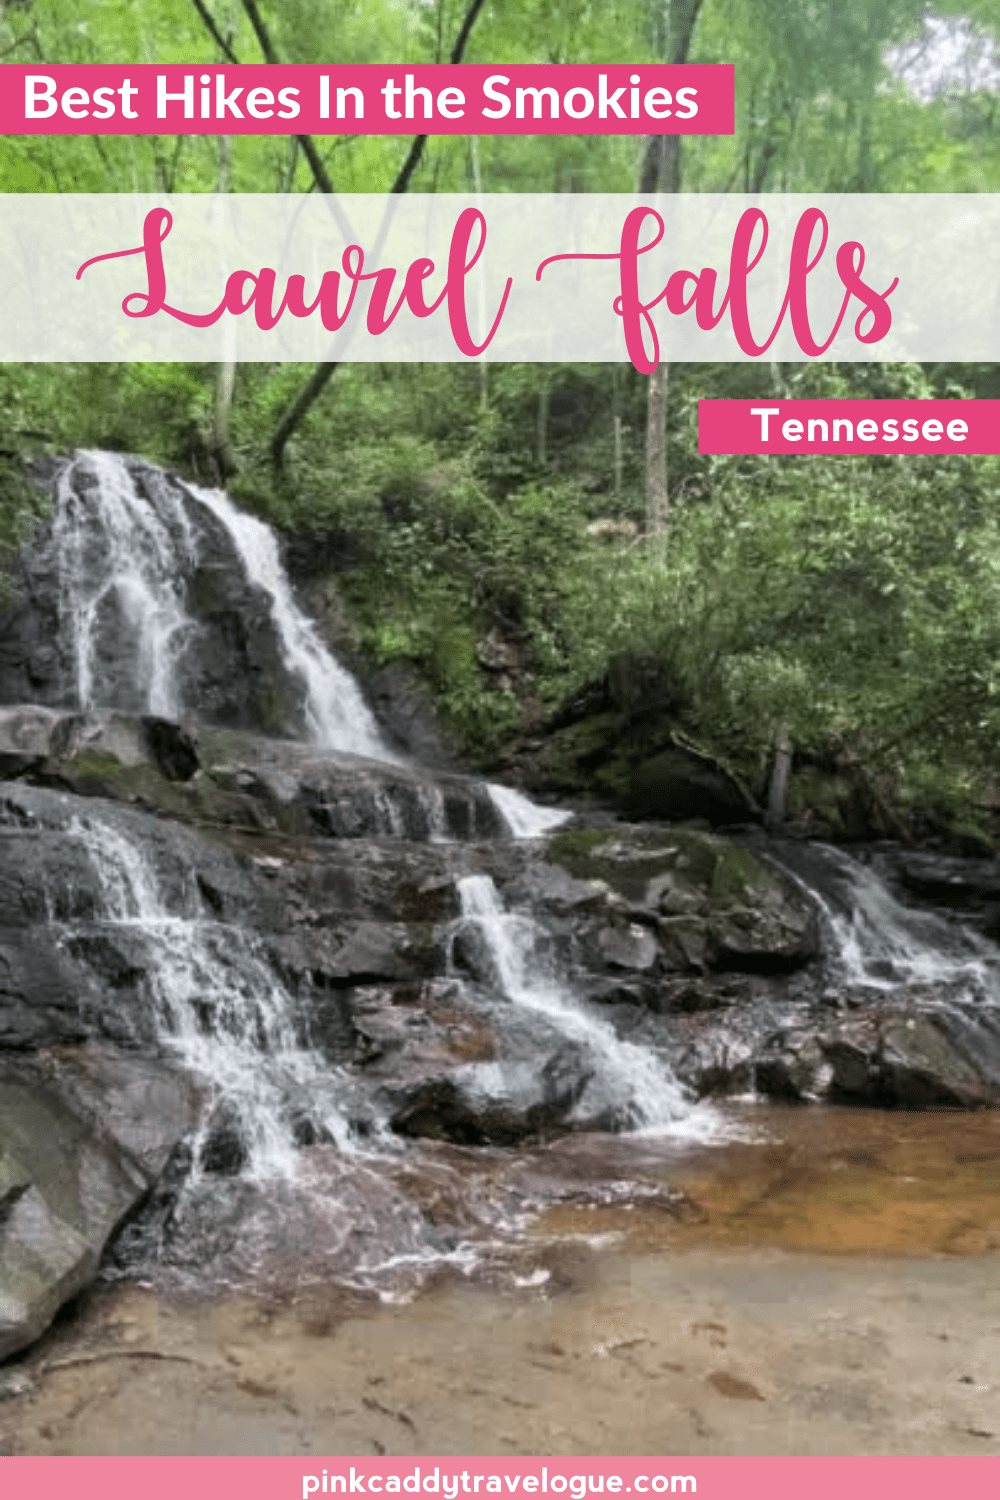 The Laurel Falls Hike in Great Smoky Moutains National Park is one of the park's most popular. It's relatively short and easy but very rewarding, and can be done by just about anyone! Read on for everything you need to know about this great hike. #tennessee #greatsmokymoutains #waterfalls #hiking #laurelfalls